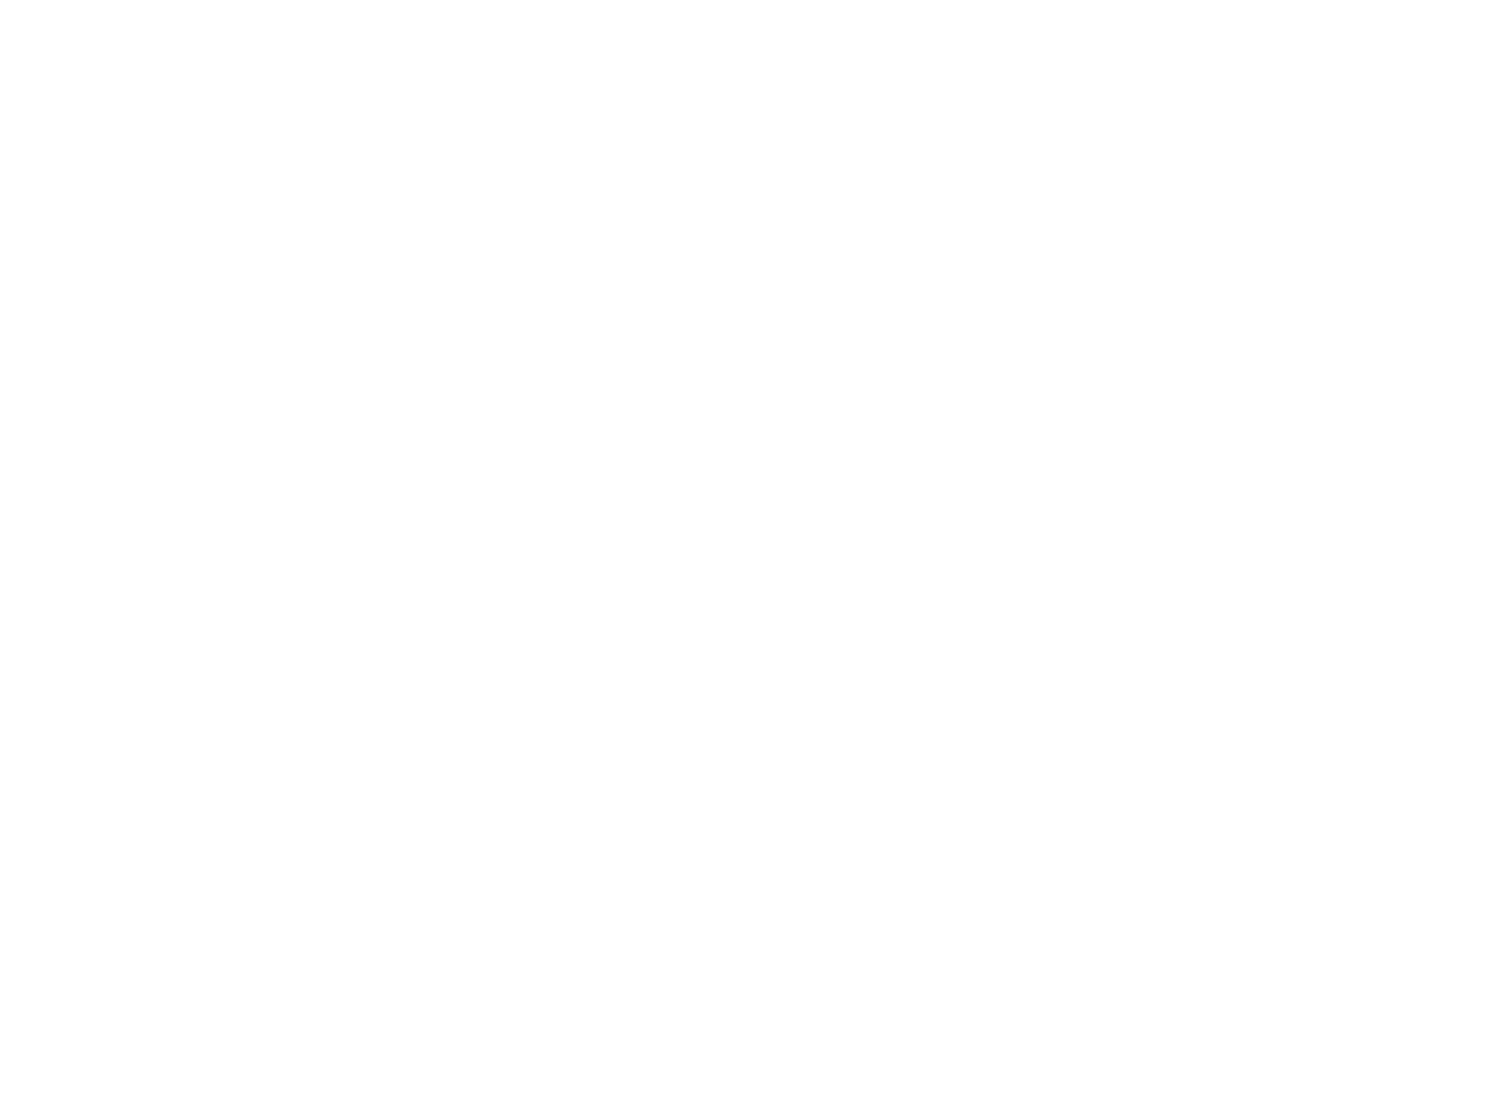 Wasatch Motor Credit